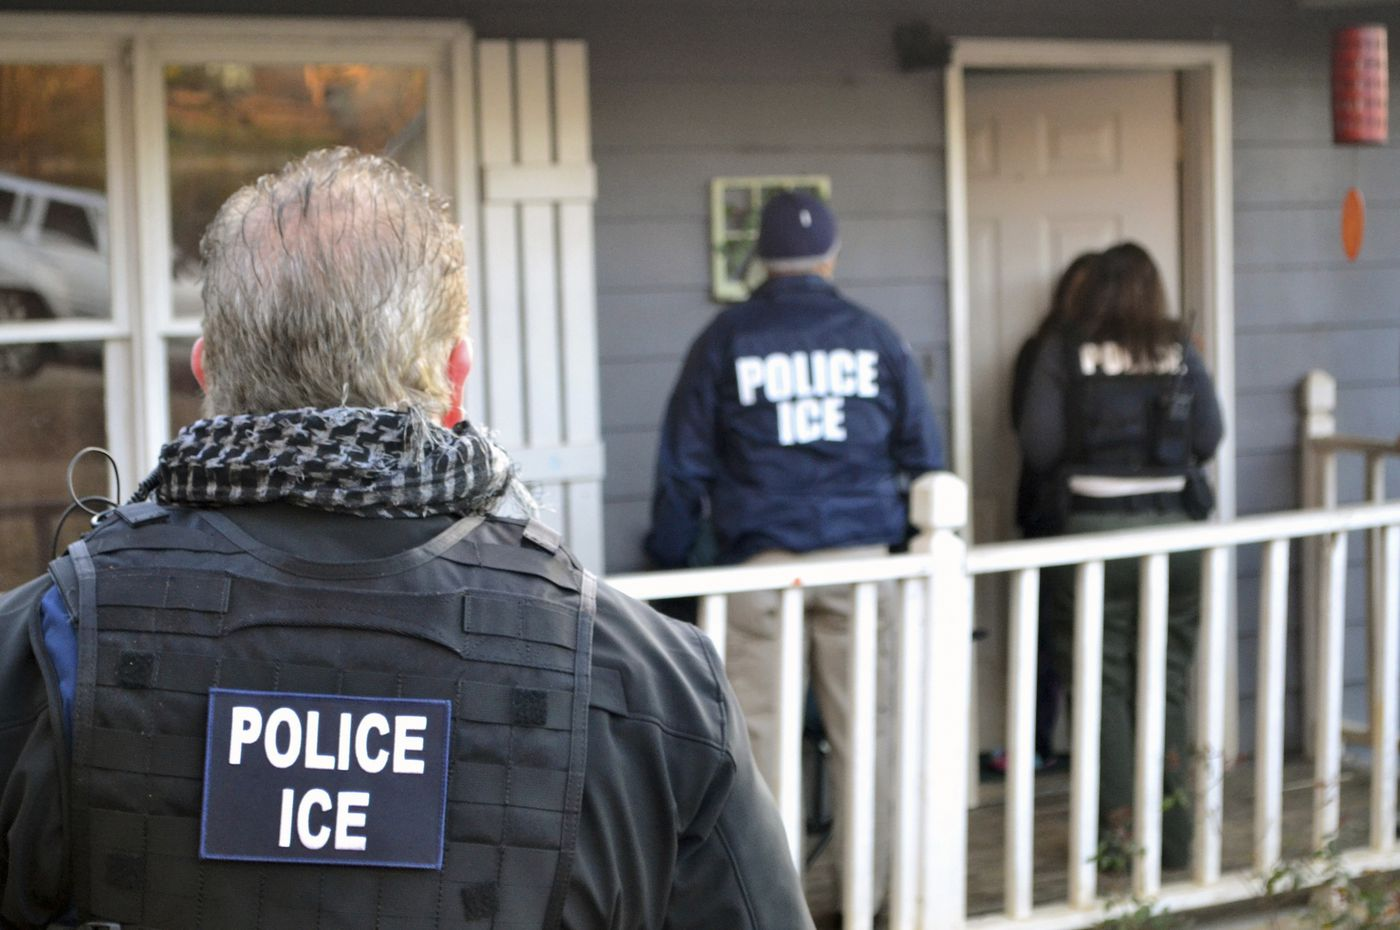 Undocumented and no recourse: Armando's boss threatened to have him deported. Can he survive a call to ICE? | Opinion